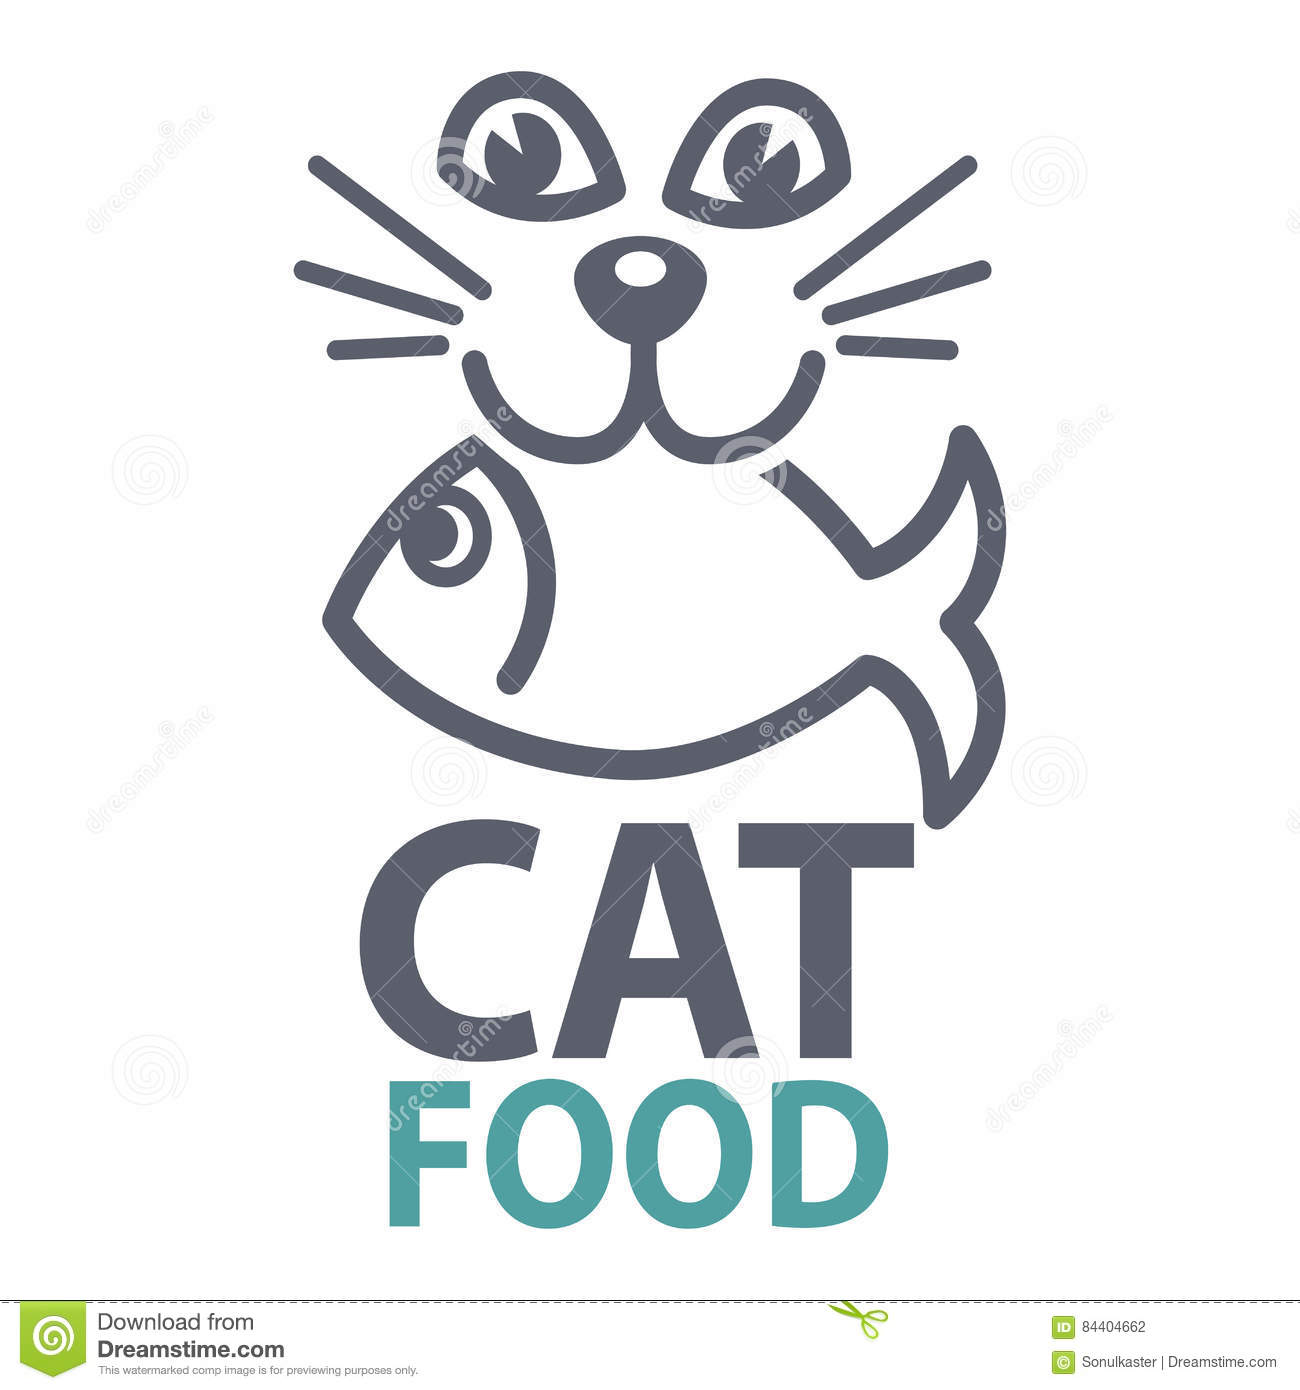 Pet food logo with cat icon. concept of veterinary